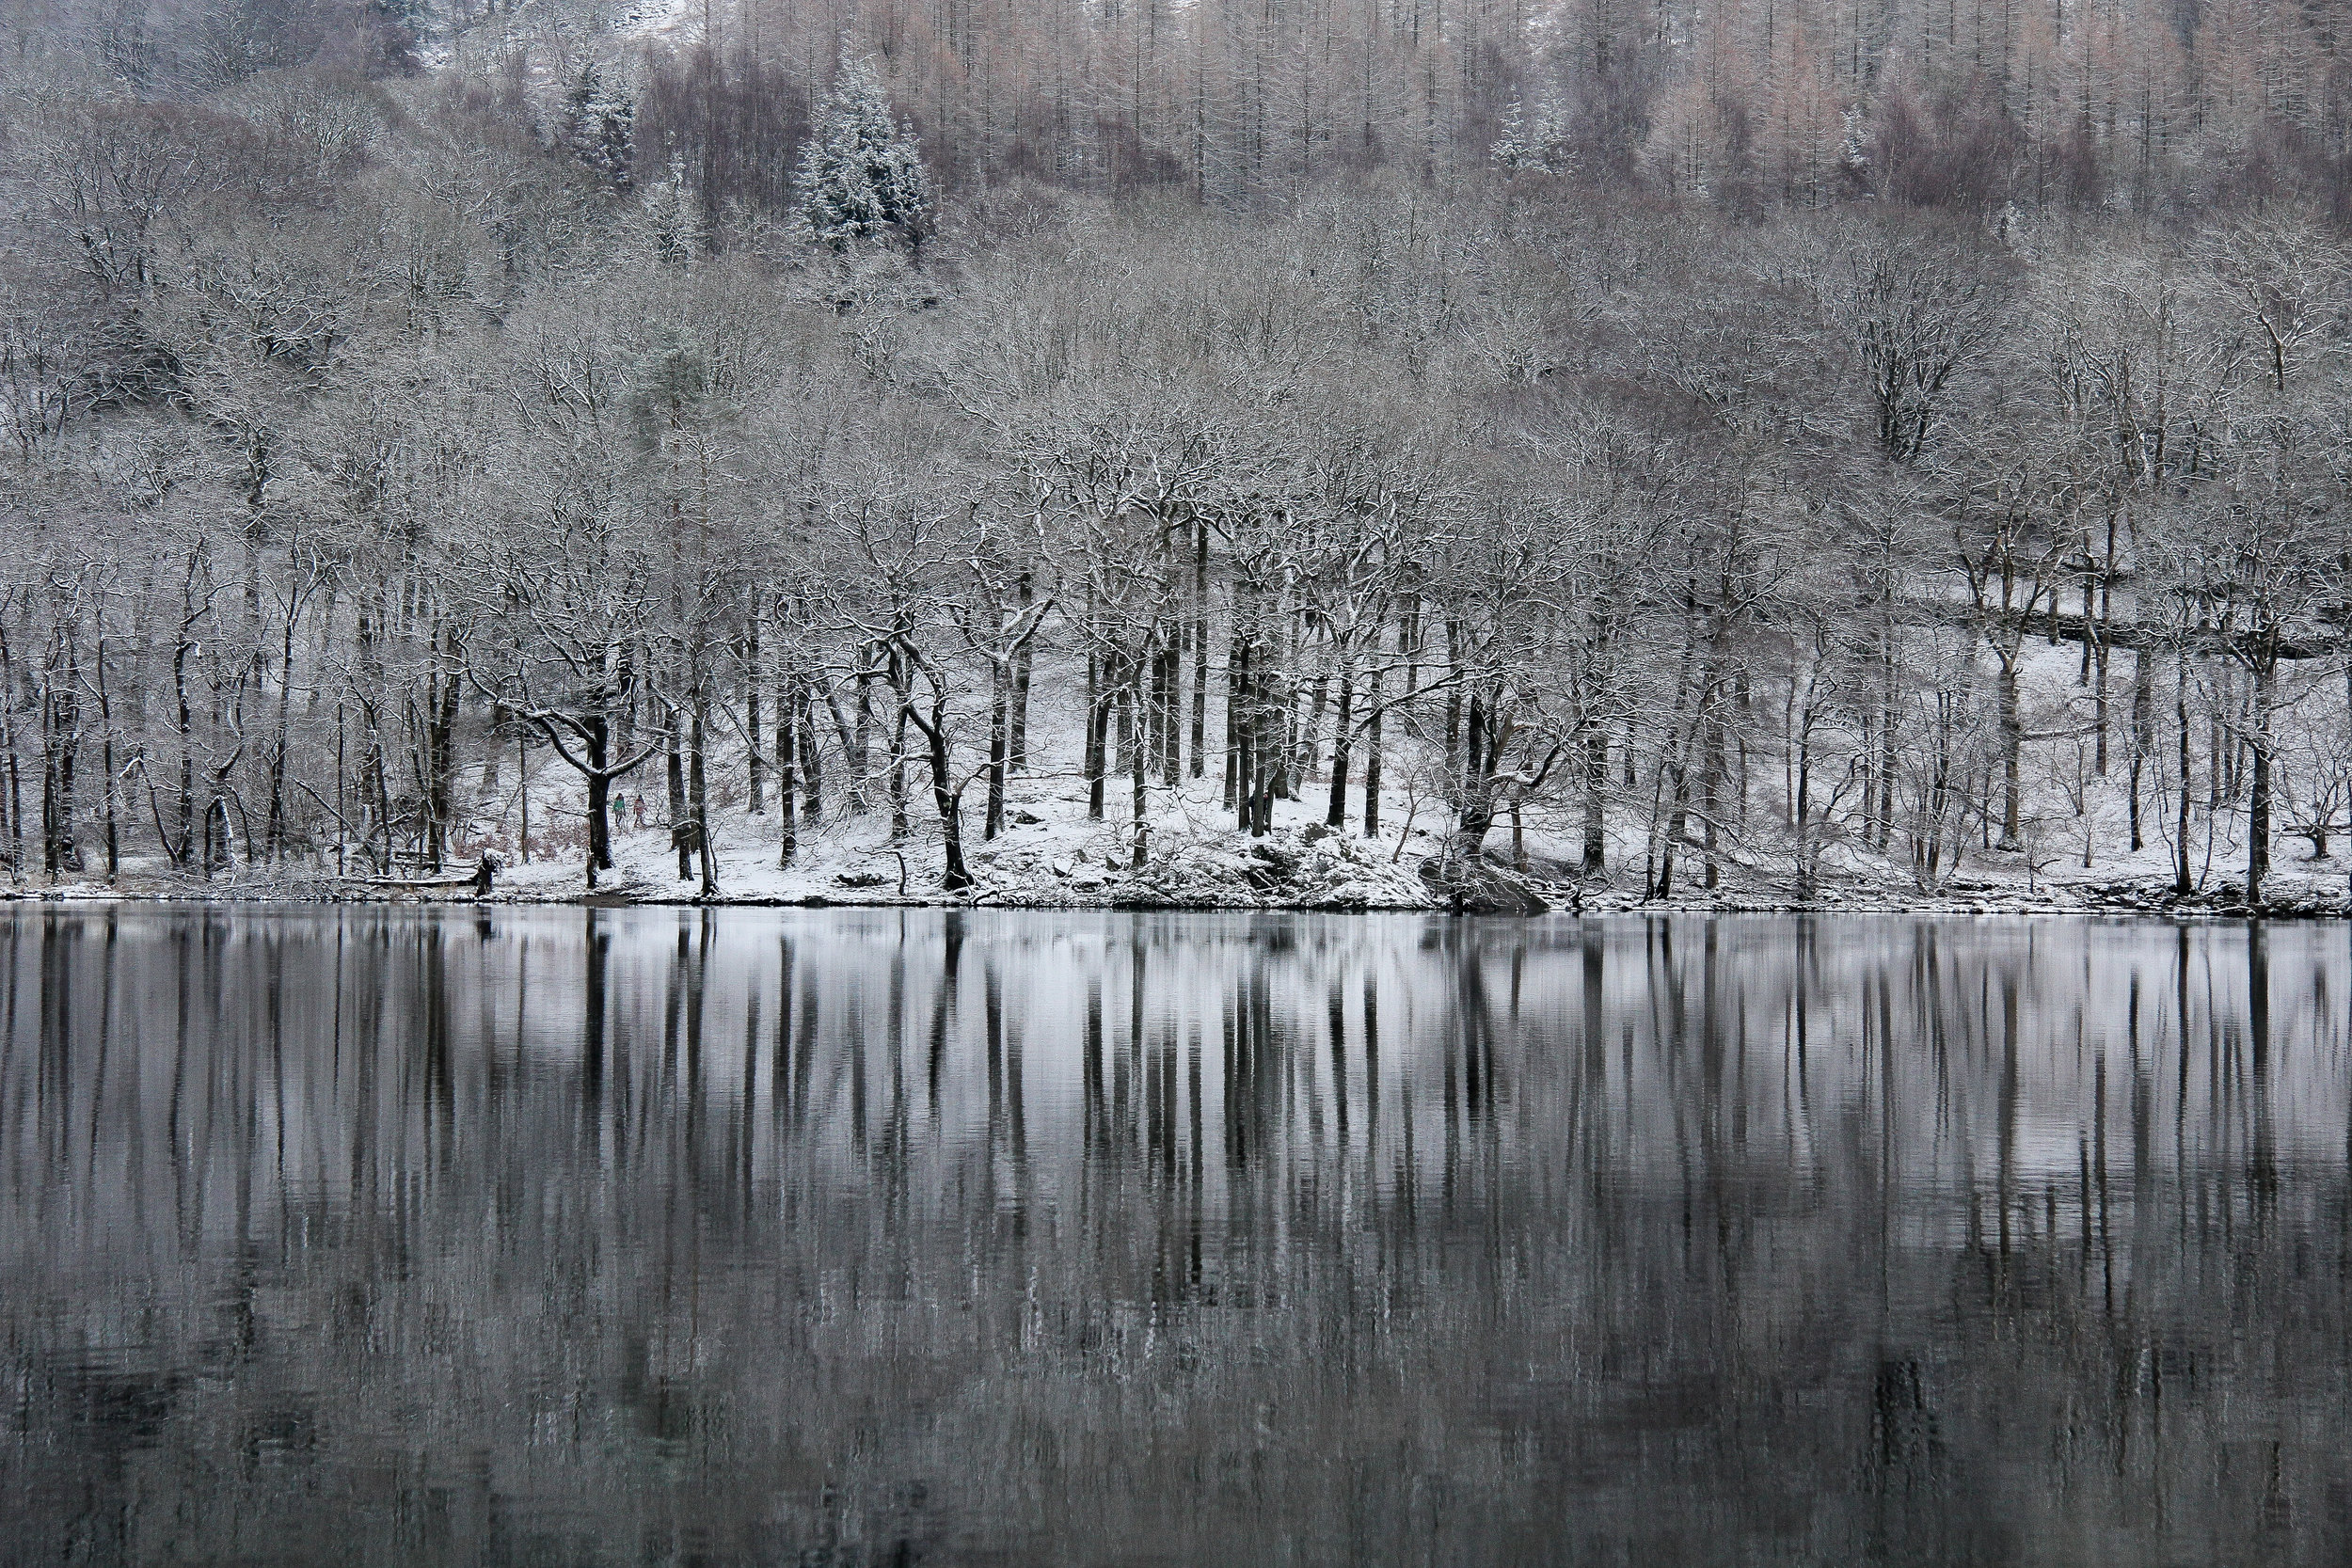 Reflections at Rydal Water